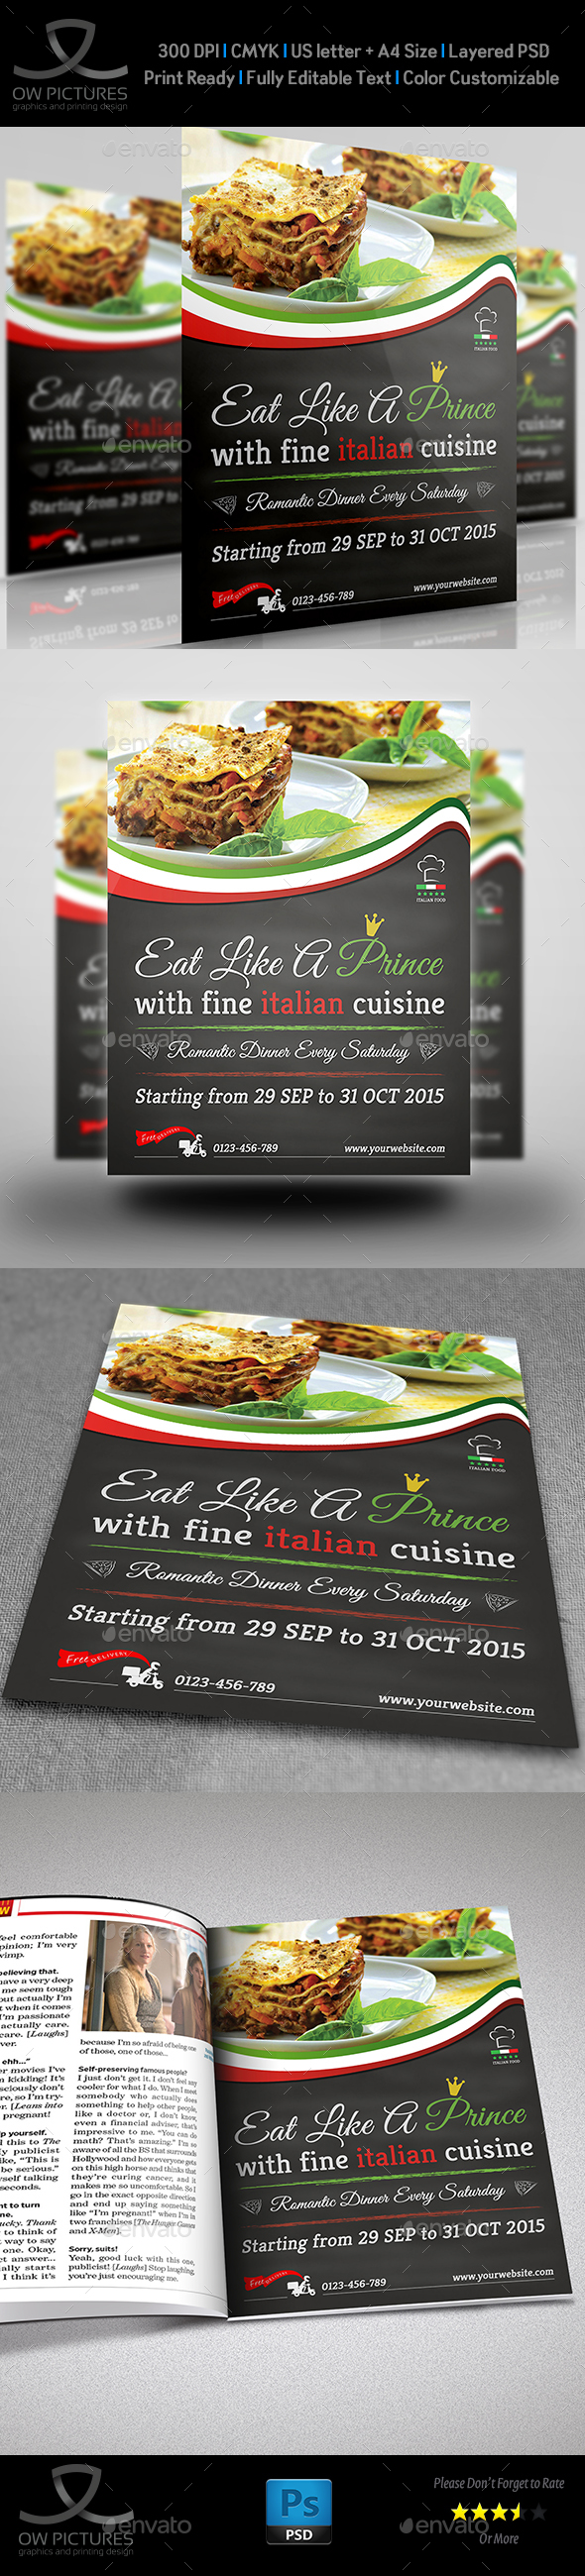 Italian Food Restaurant Flyer Vol.2 - Restaurant Flyers